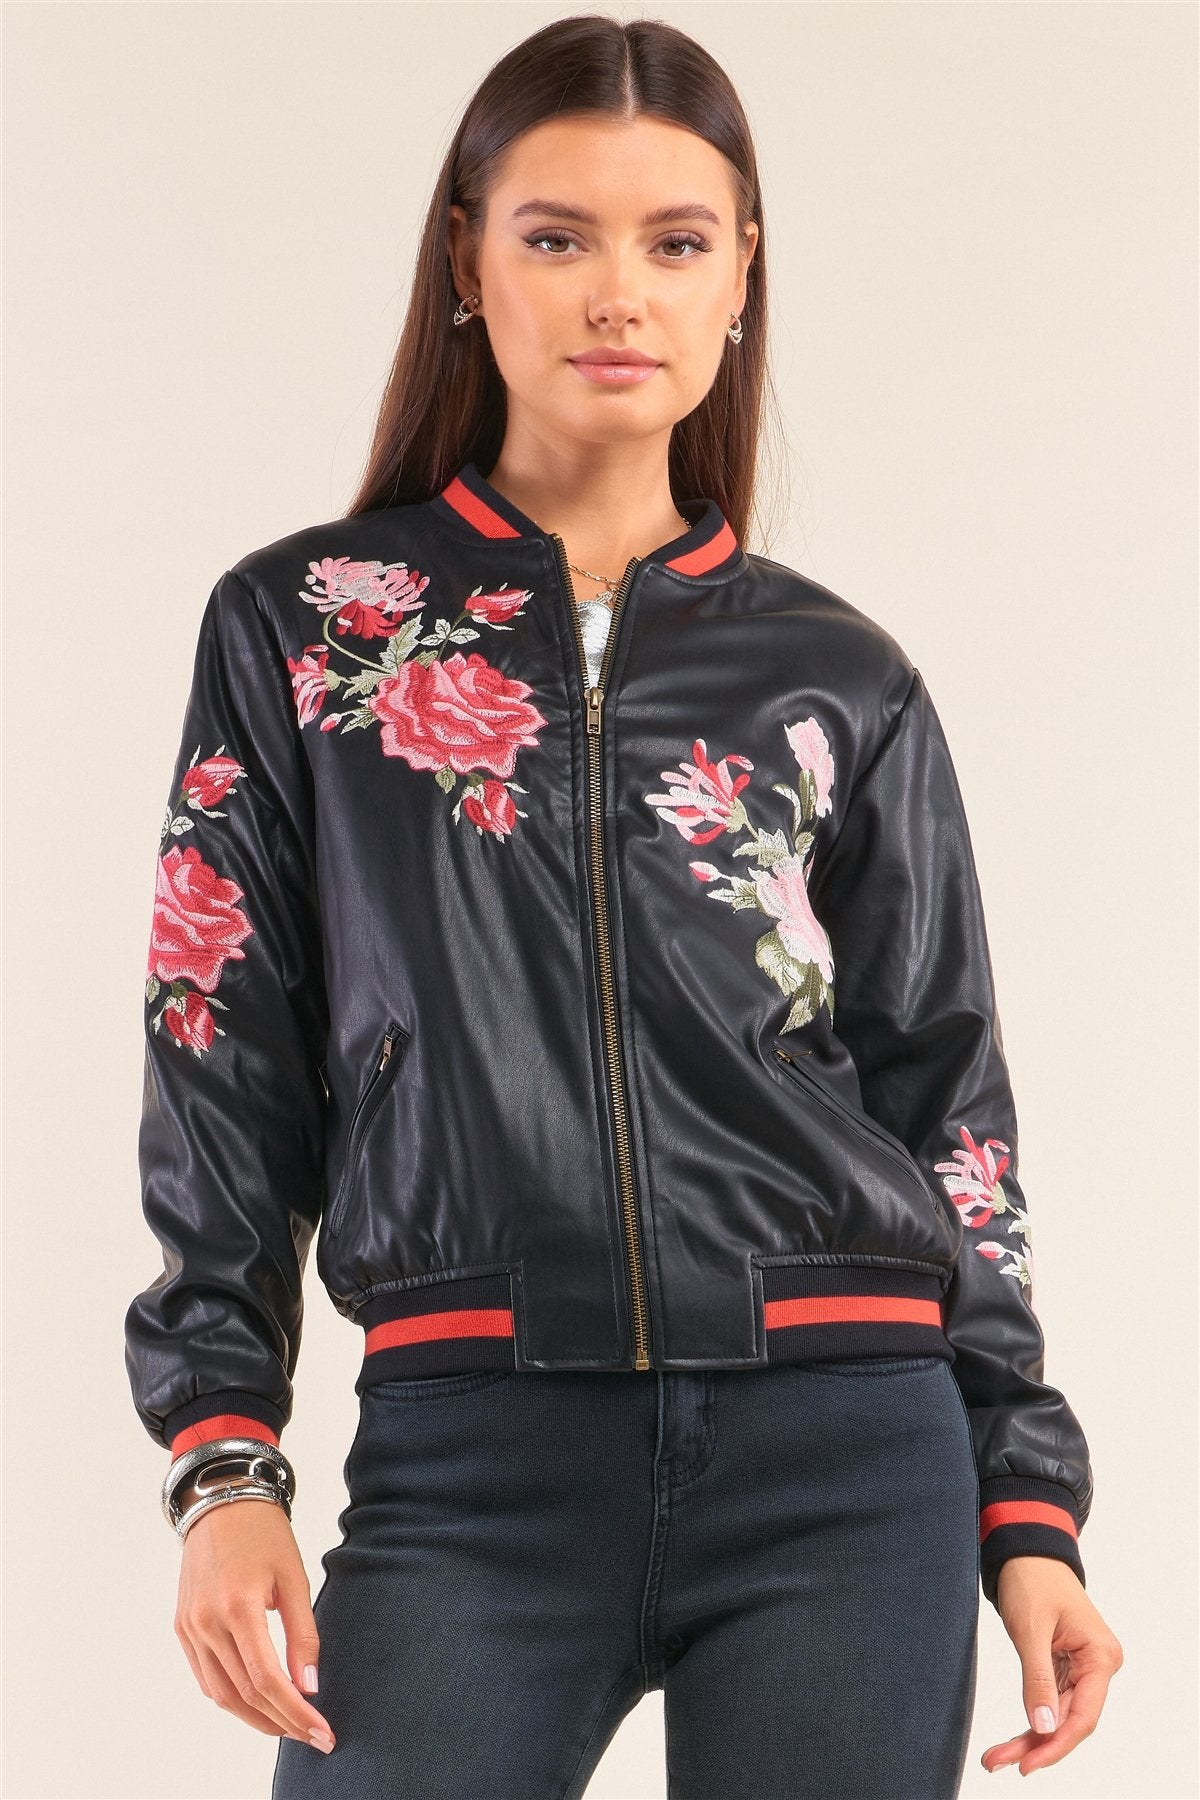 Rosa Black Vegan Leather Floral Embroidery Striped Hem Bomber Jacket - Absolute Fashion 2020